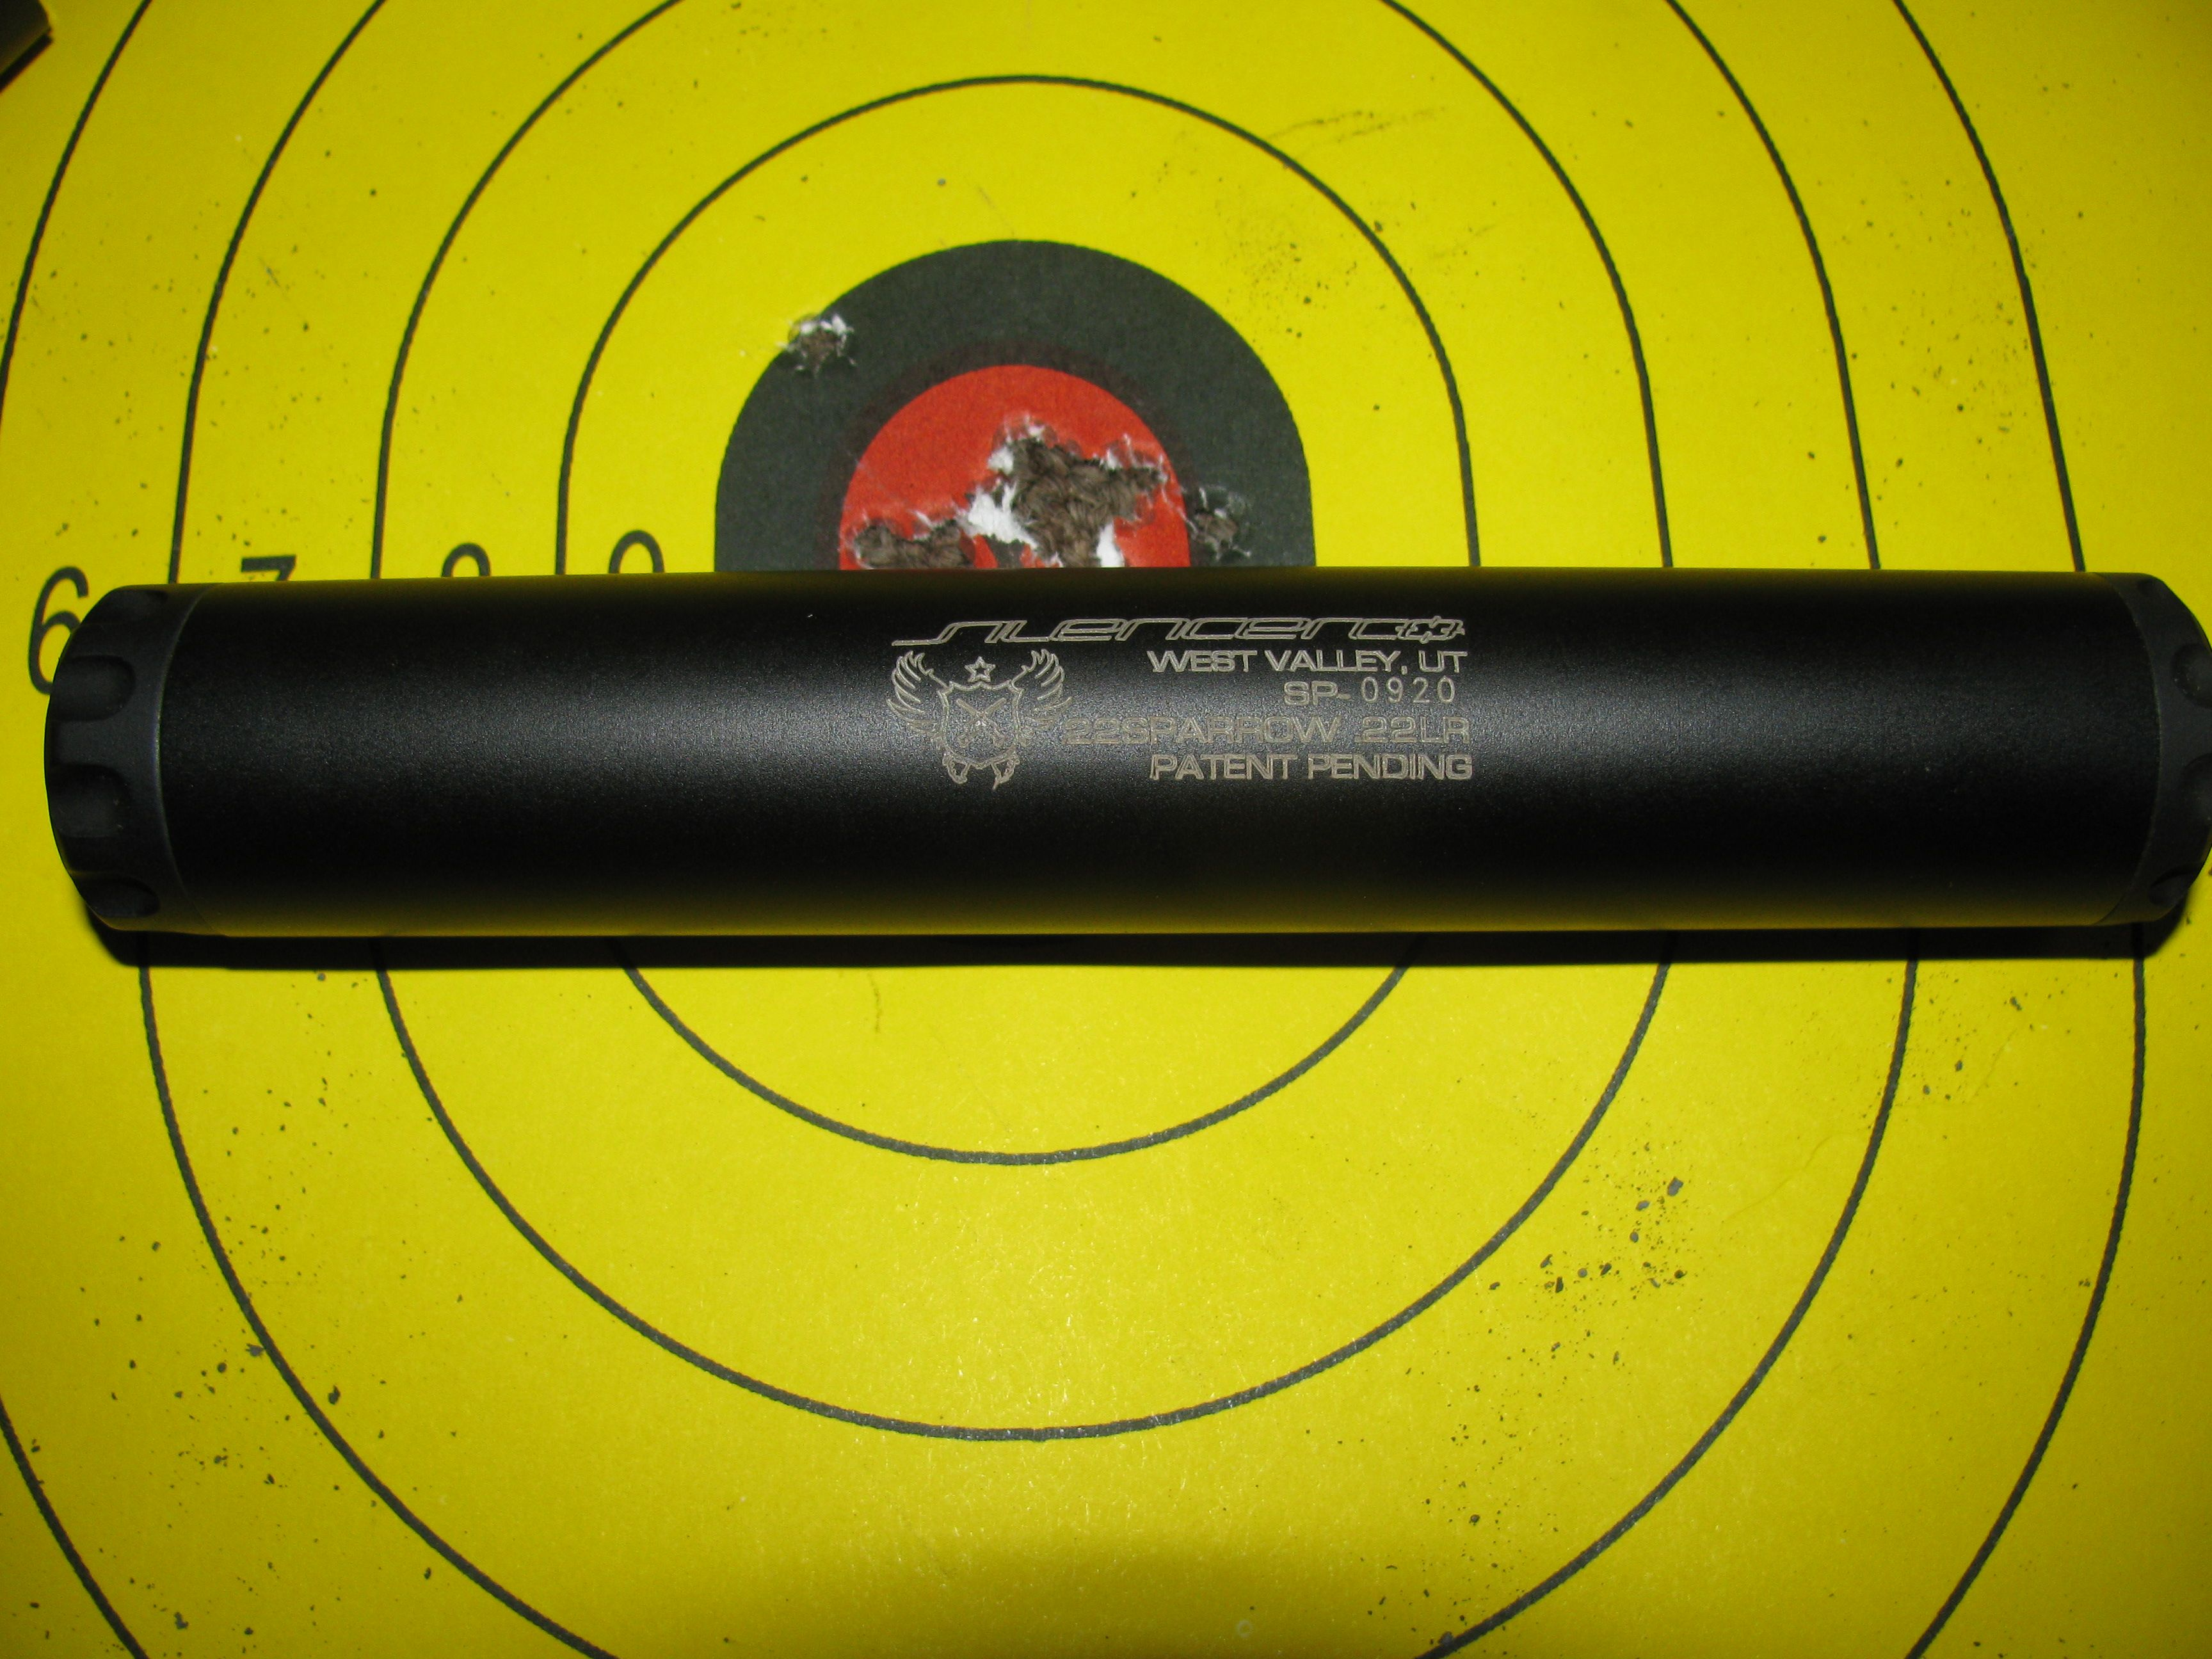 Sparrow 22 suppressor & Ruger 22/45 - Range Report